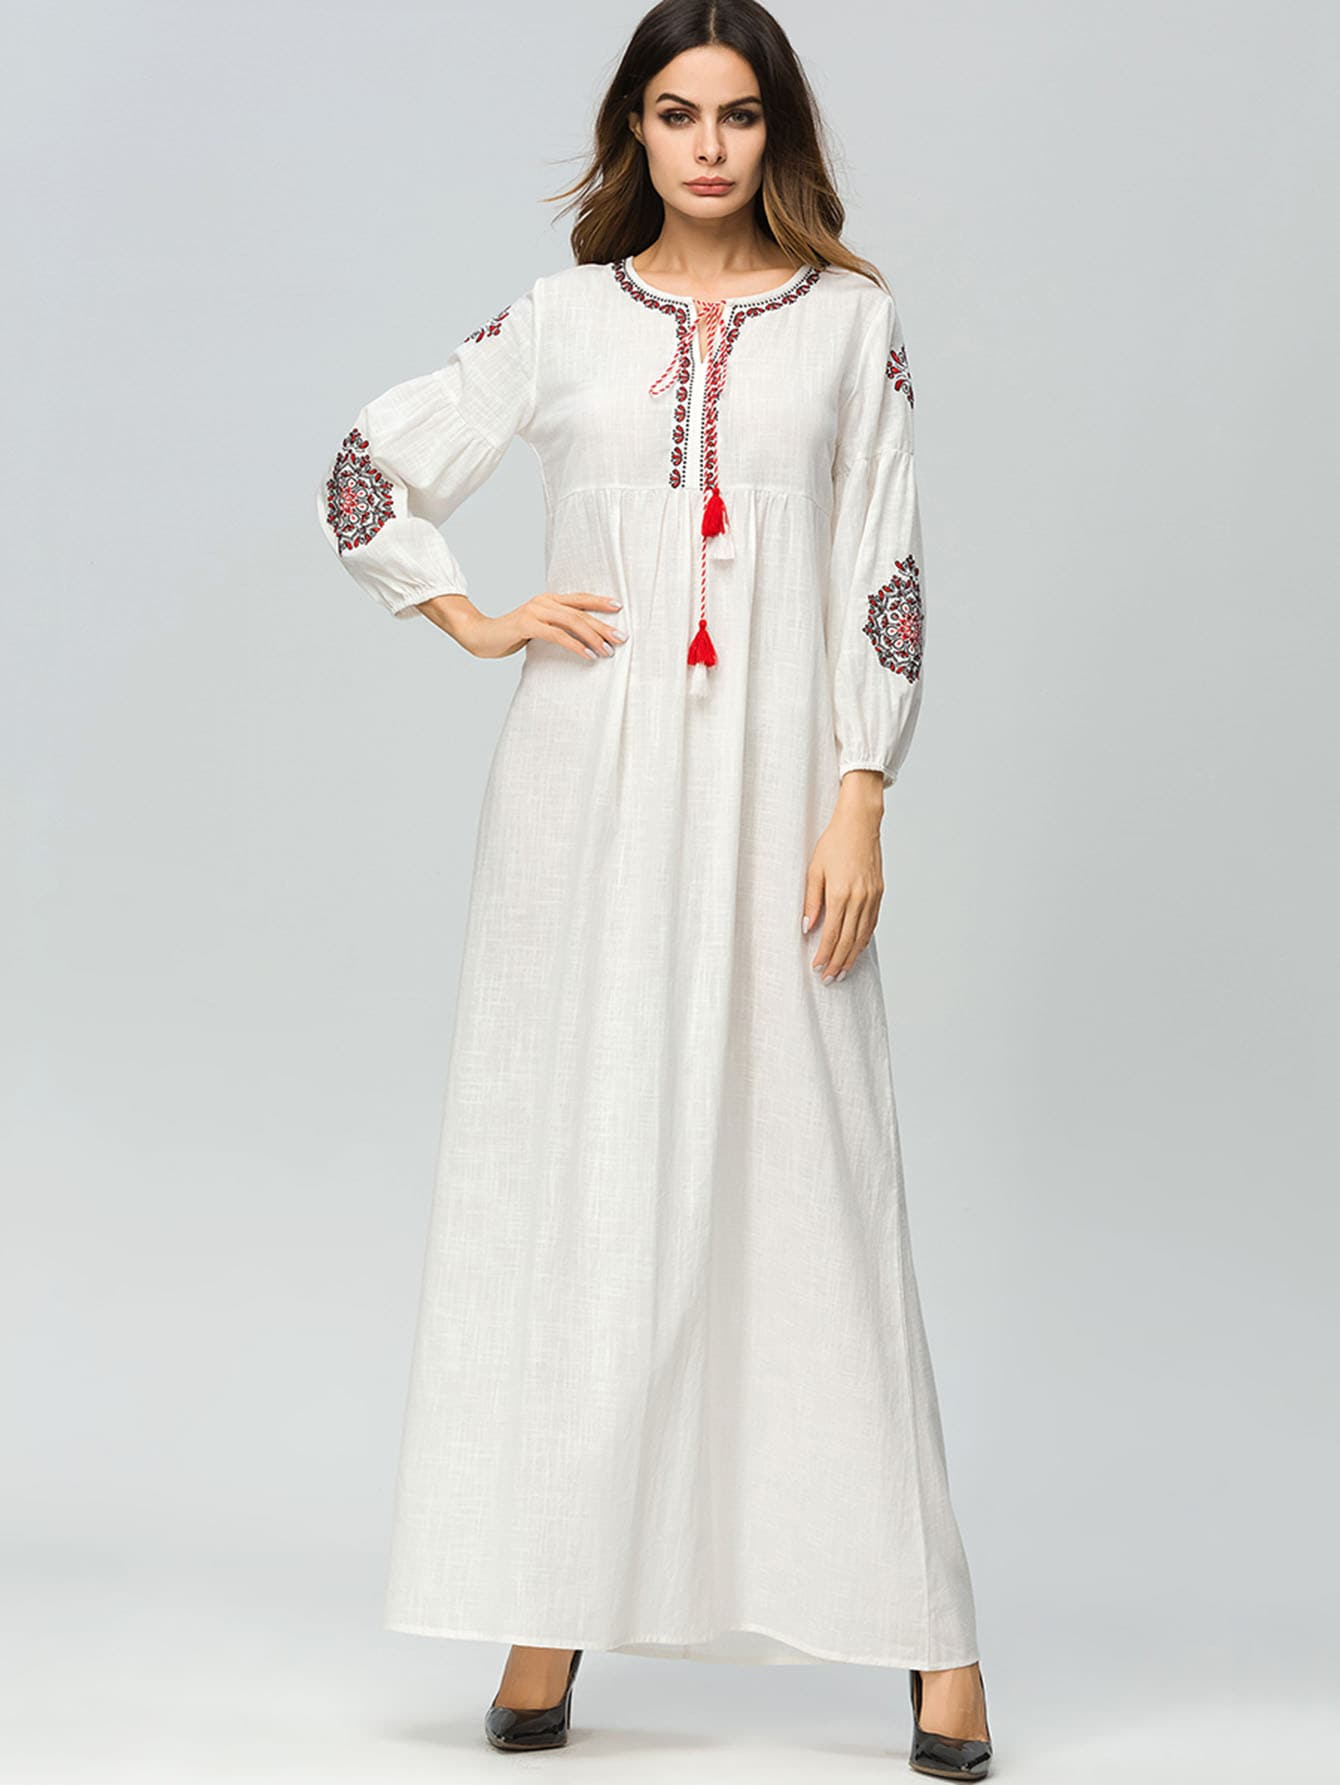 Floral Embroidered Tie Neck Longline Dress